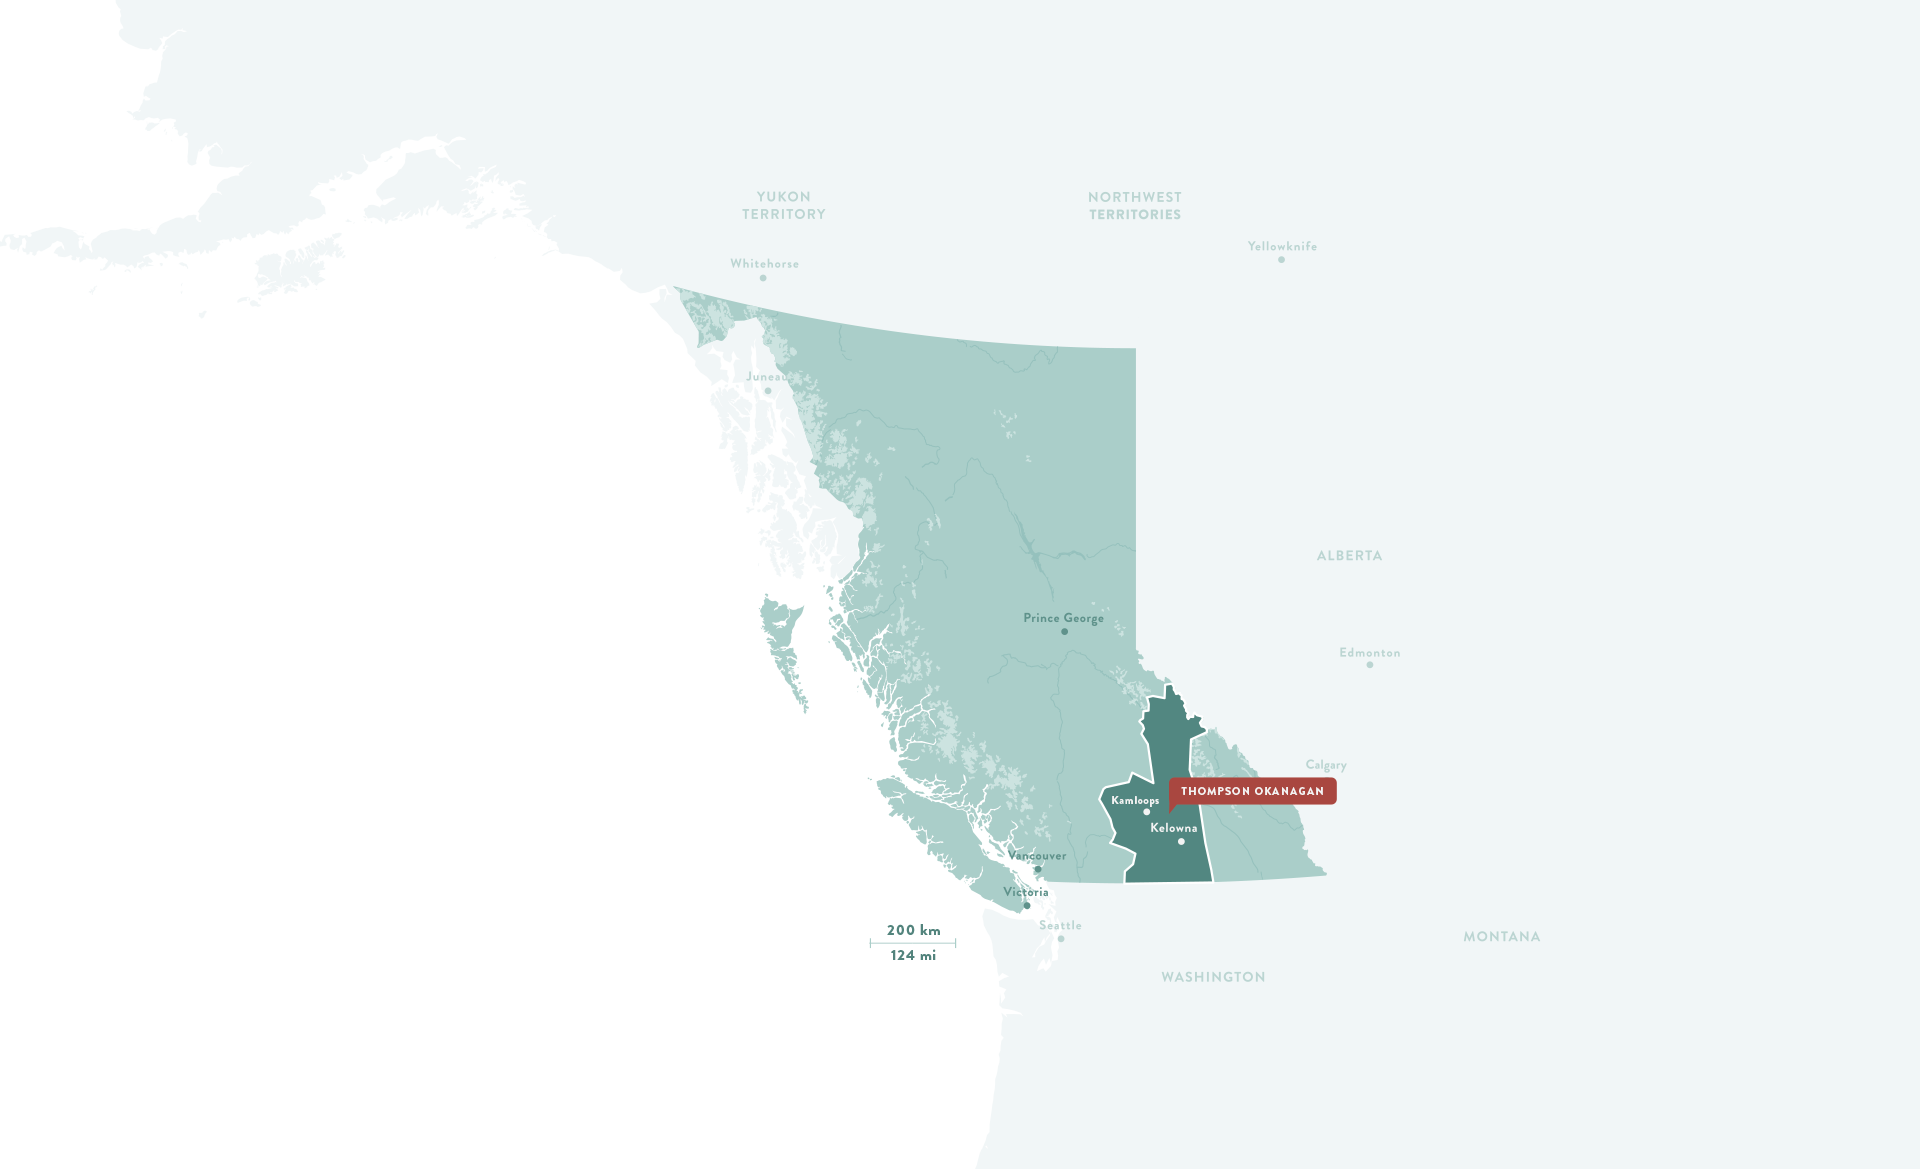 Thompson Okanagan region map